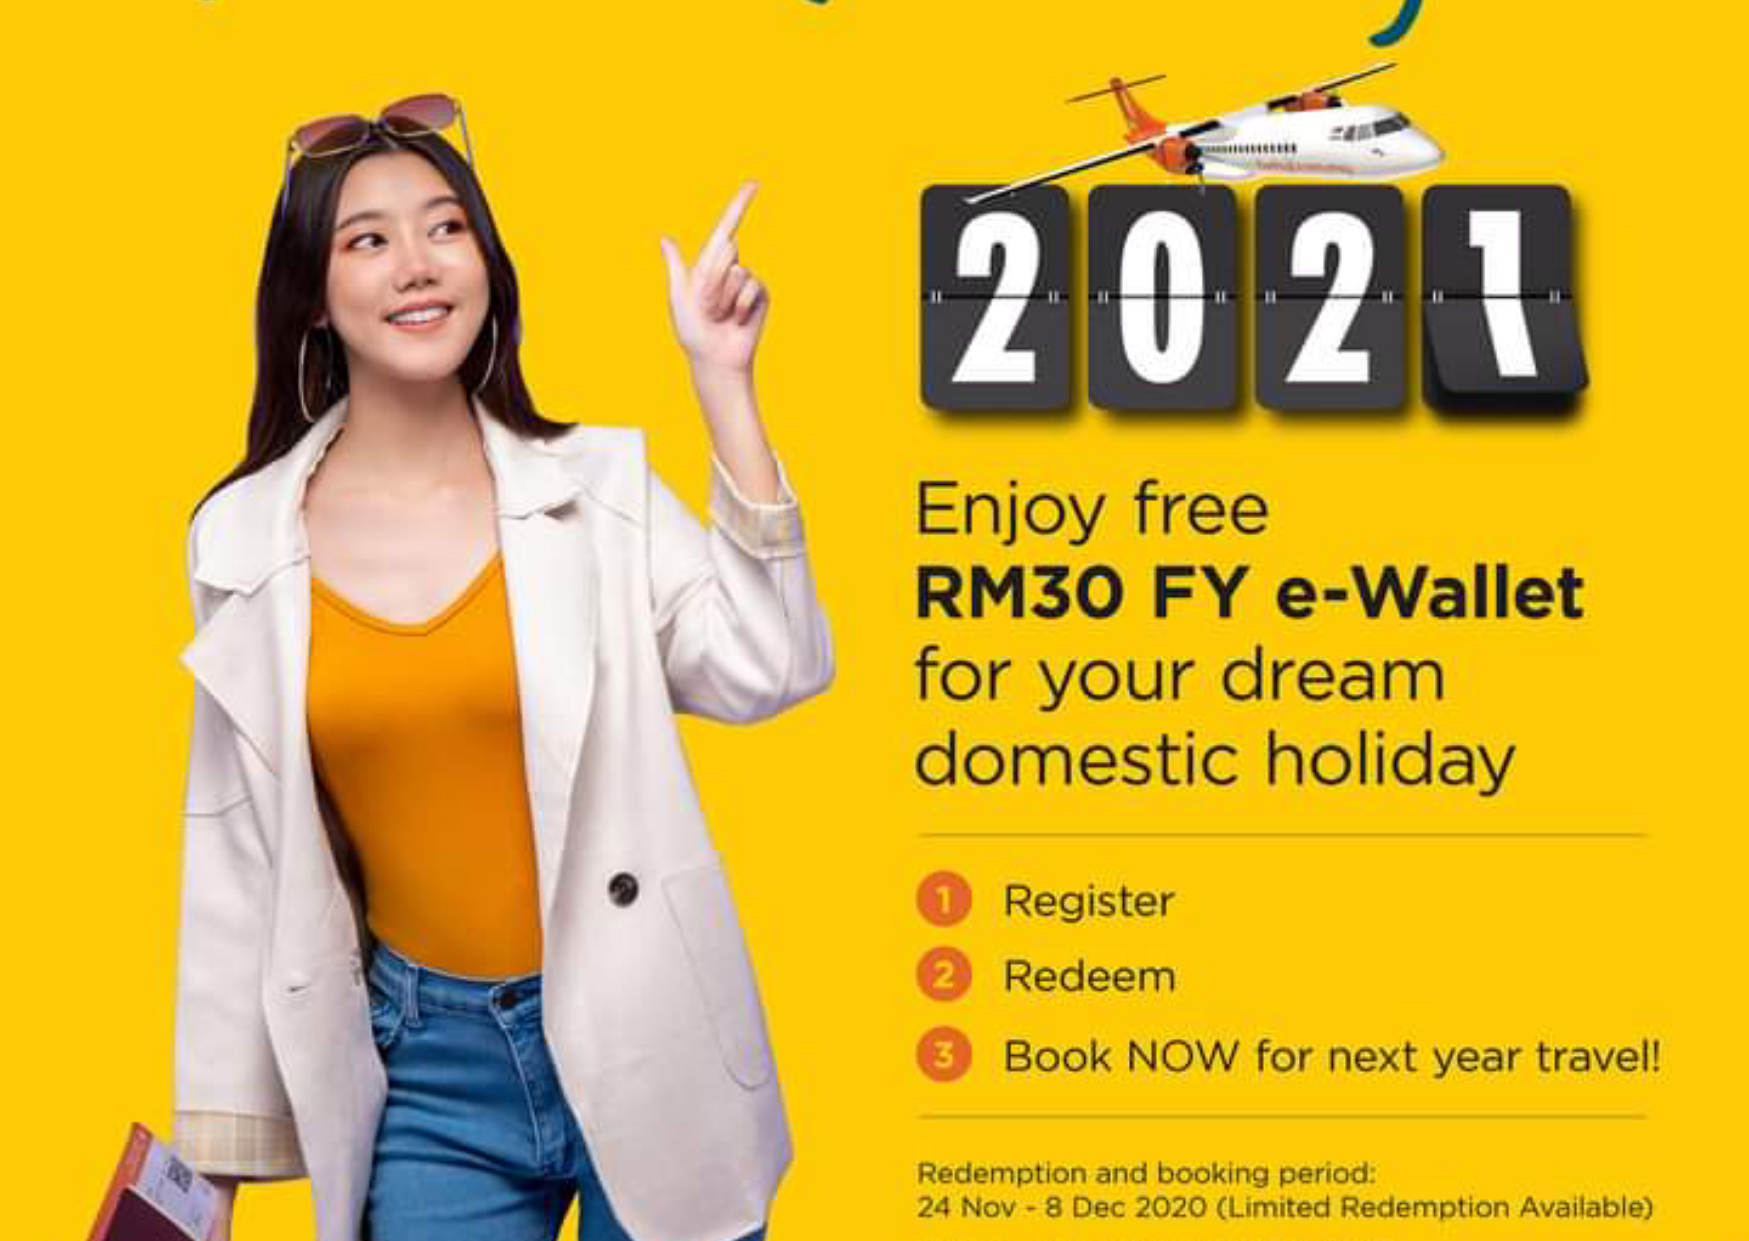 Free RM30 FY e-wallet for Cuti Malaysia Stimulus - Firefly